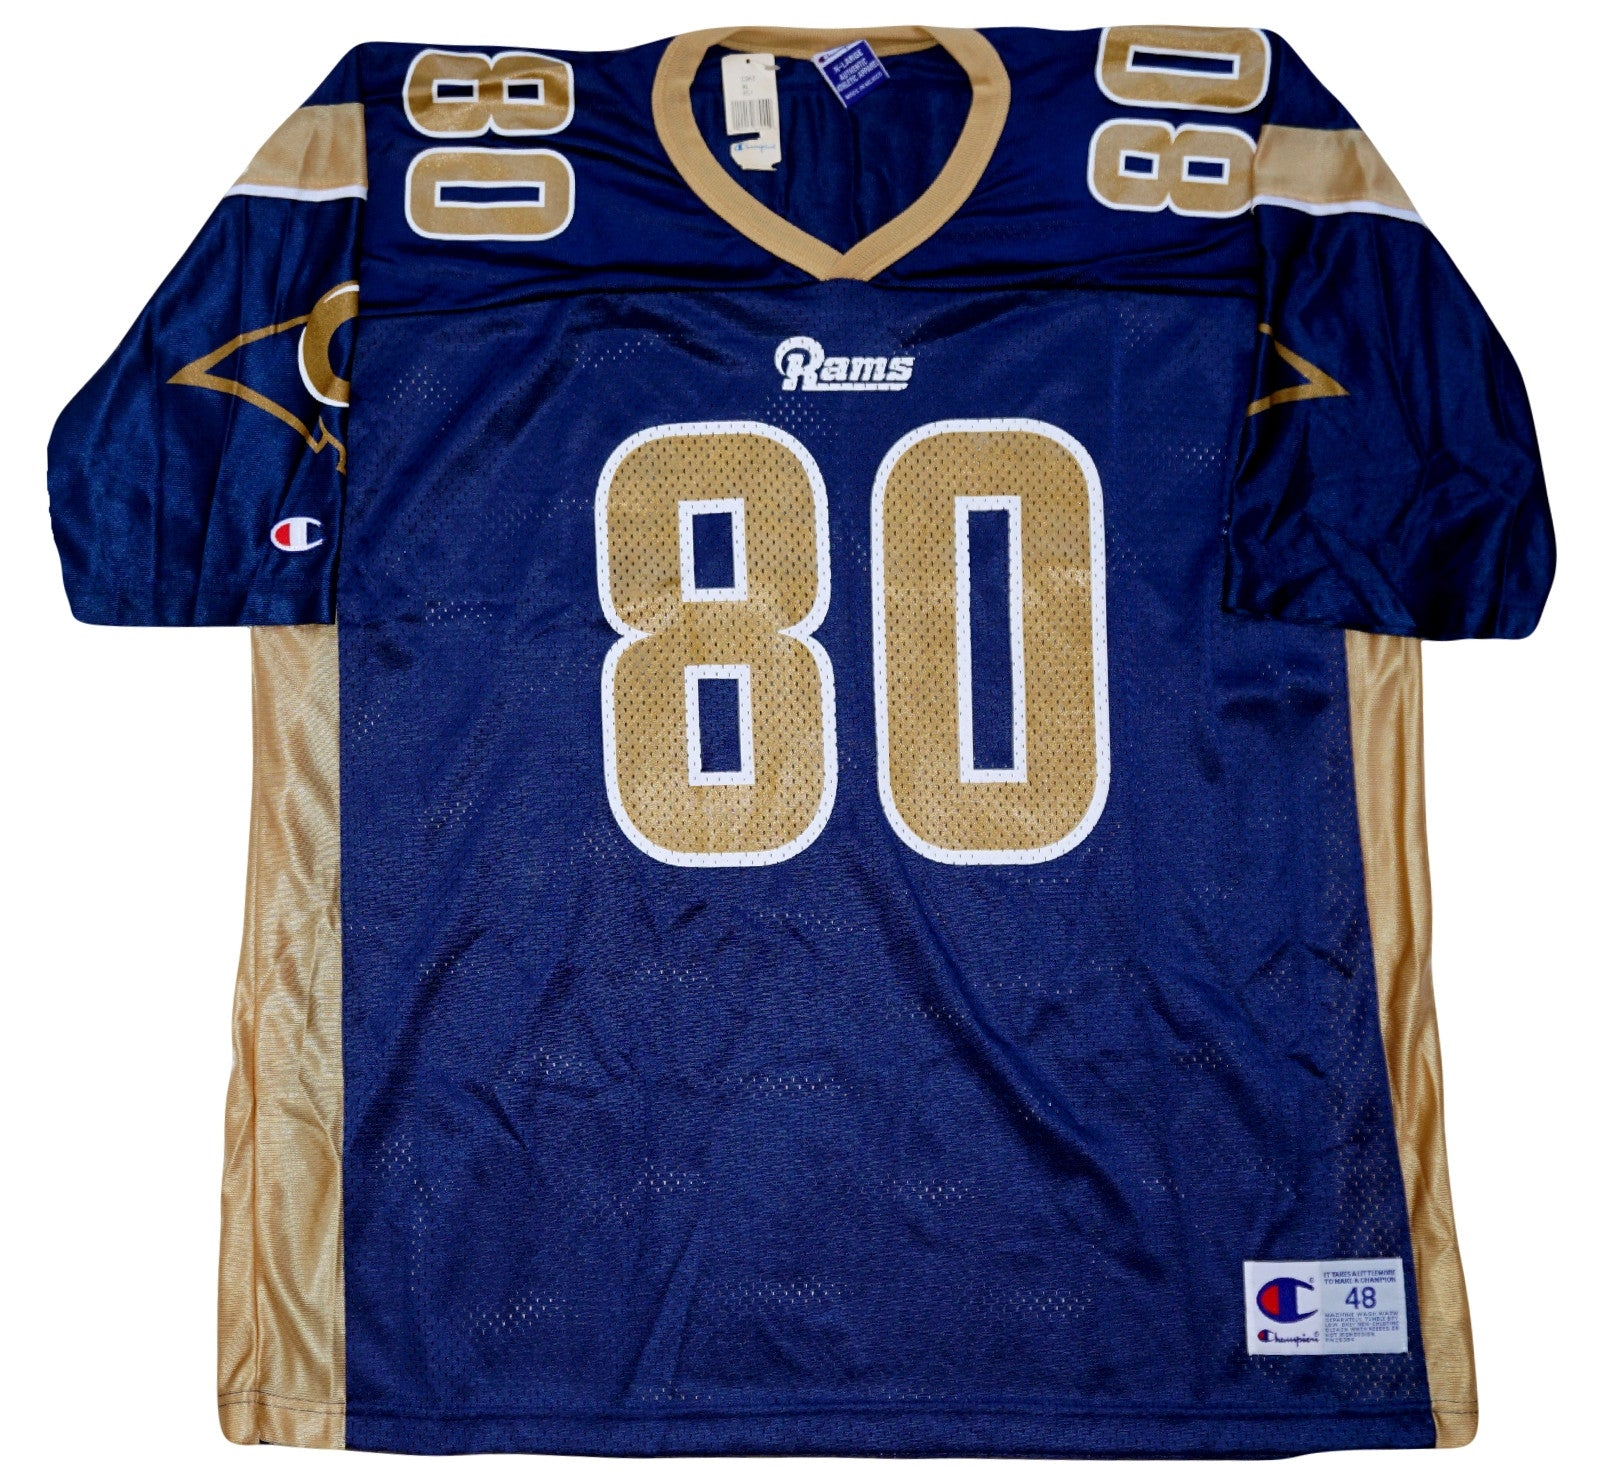 Isaac Bruce Rams Jersey - And Still